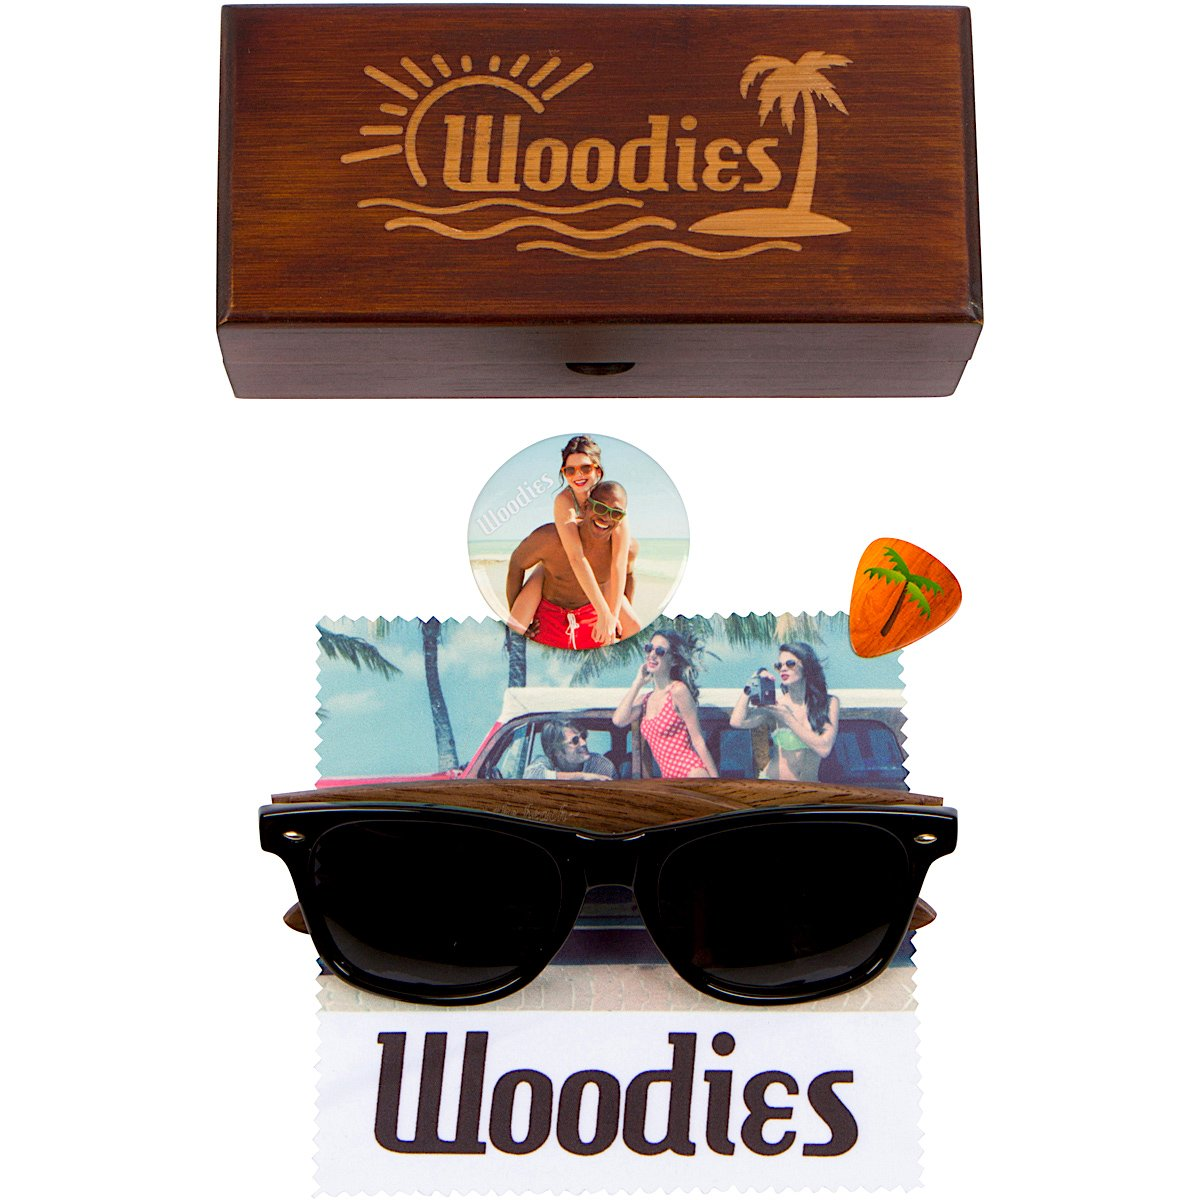 WOODIES Walnut Wood Wayfarer Sunglasses with Polarized Lens in Wood Display Box for Men or Women by Woodies (Image #6)